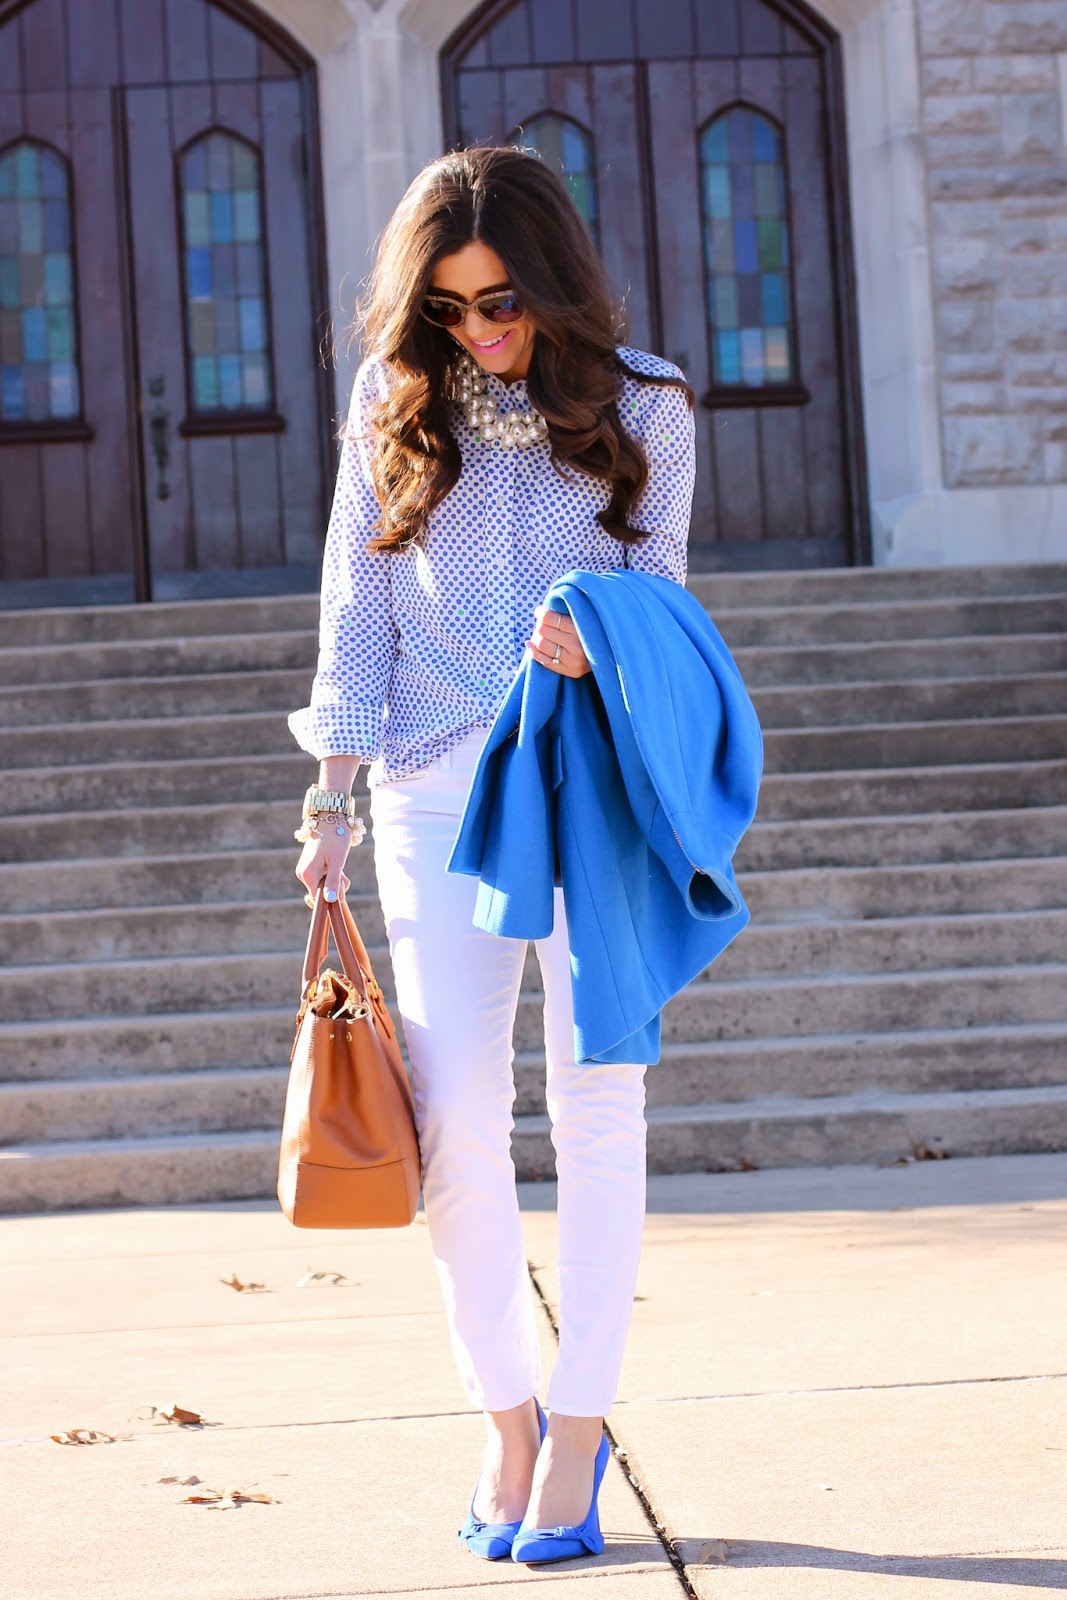 prada sunglasses, white pants in winter, blue pumps, royal blue pumps, pearl necklace, oversized pearl necklace, zara necklace, mac saint germaine lipstick, tory burch robinson tote, gold michael kors watch, jcrew cocoon coat, sole society pumps, tory burch purse, fashion blog, style blog, winter 2013 trends, pinterest fashion, winter pinterest fashion